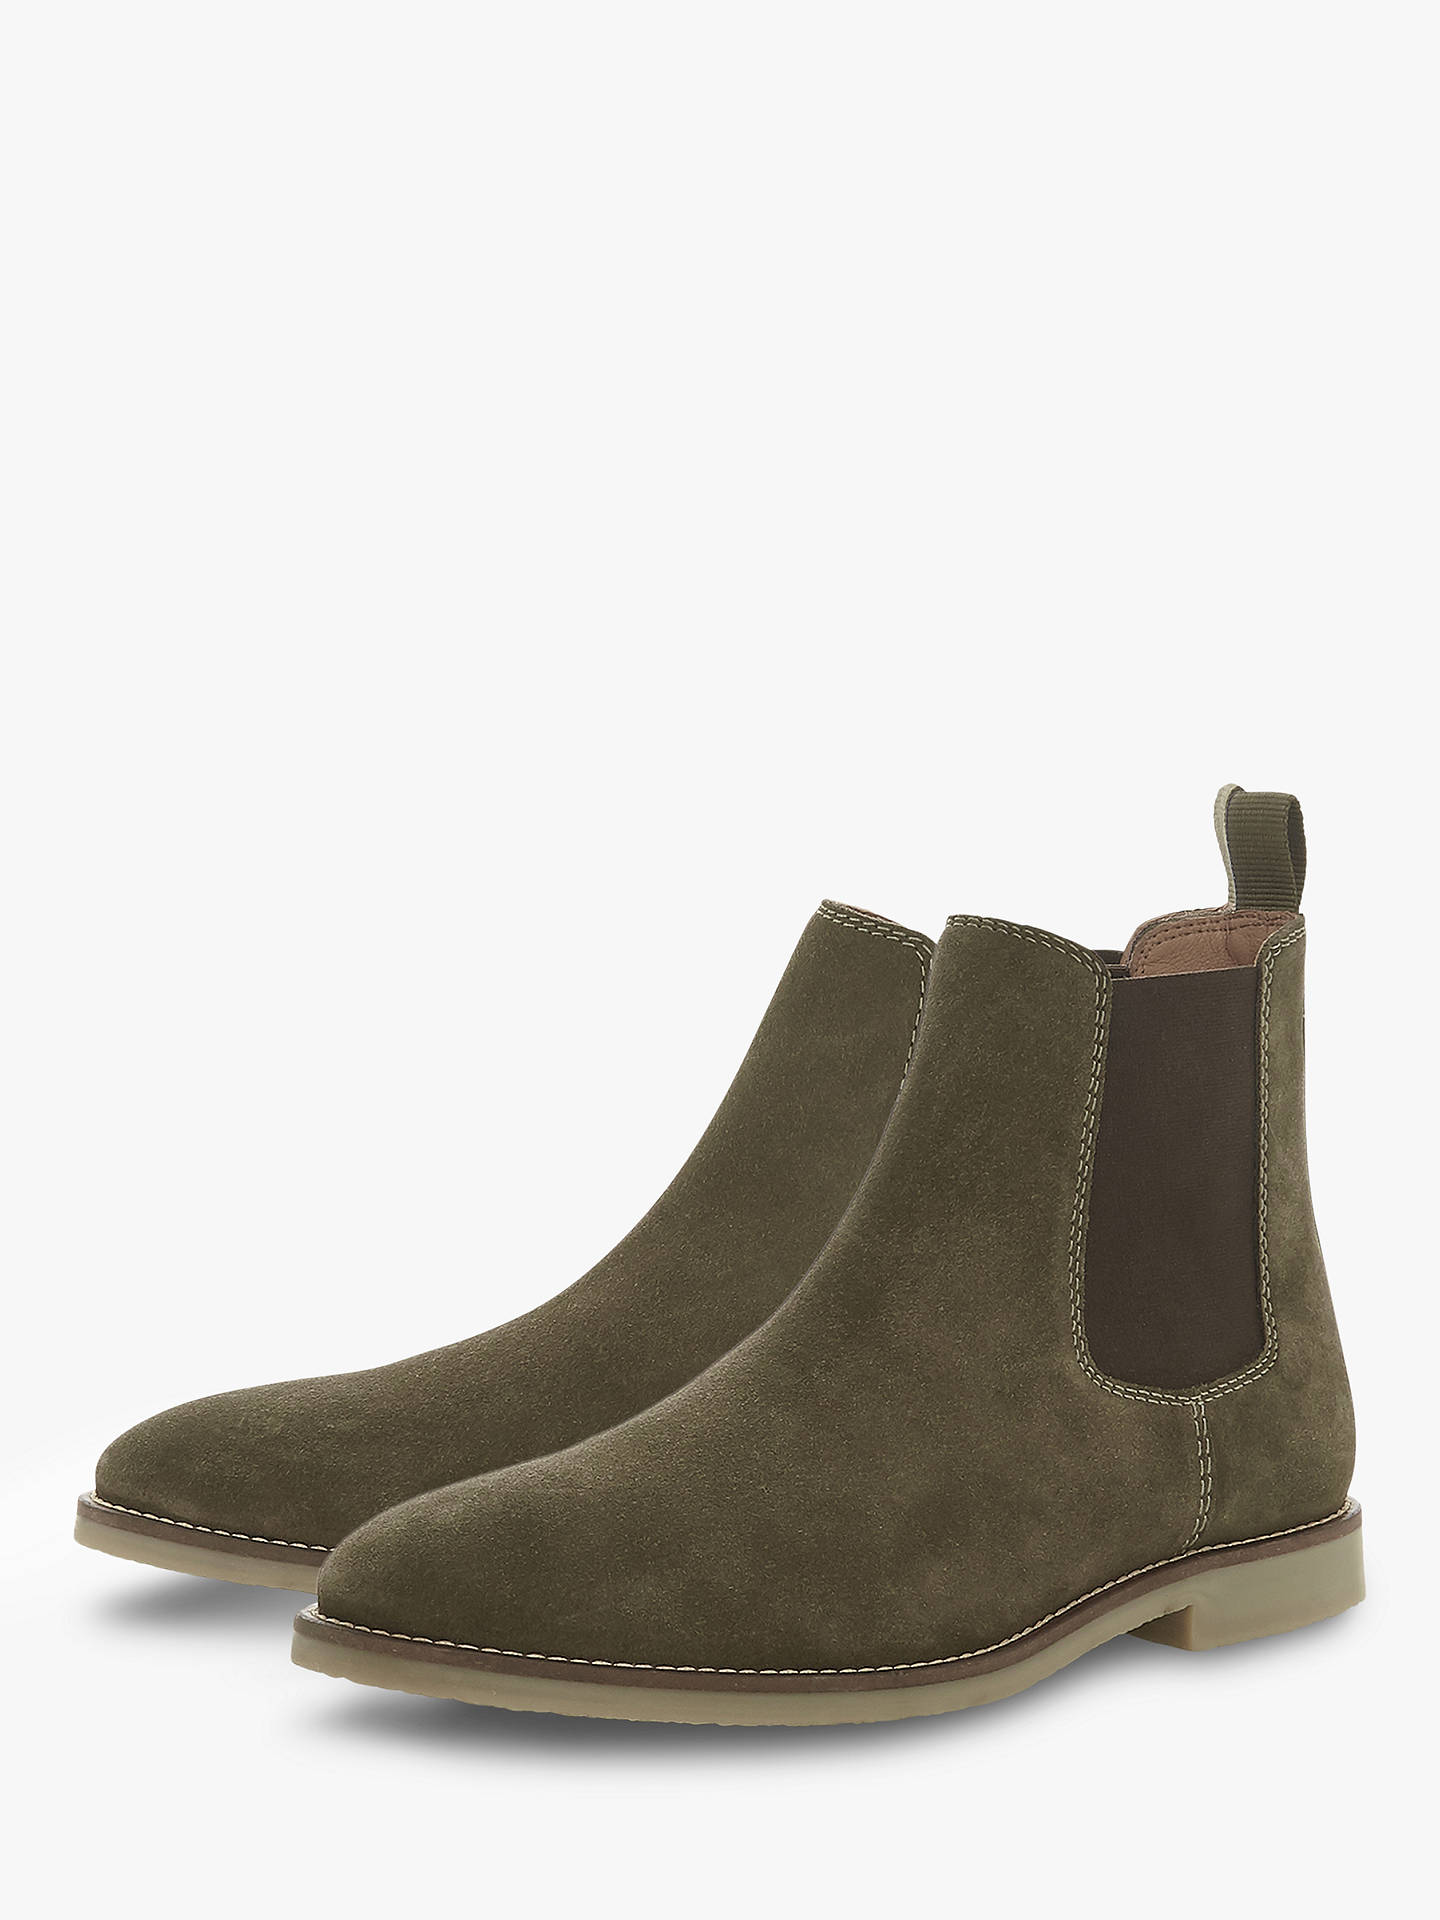 Dune Calzaghe Suede Chelsea Boots Khaki At John Lewis Partners